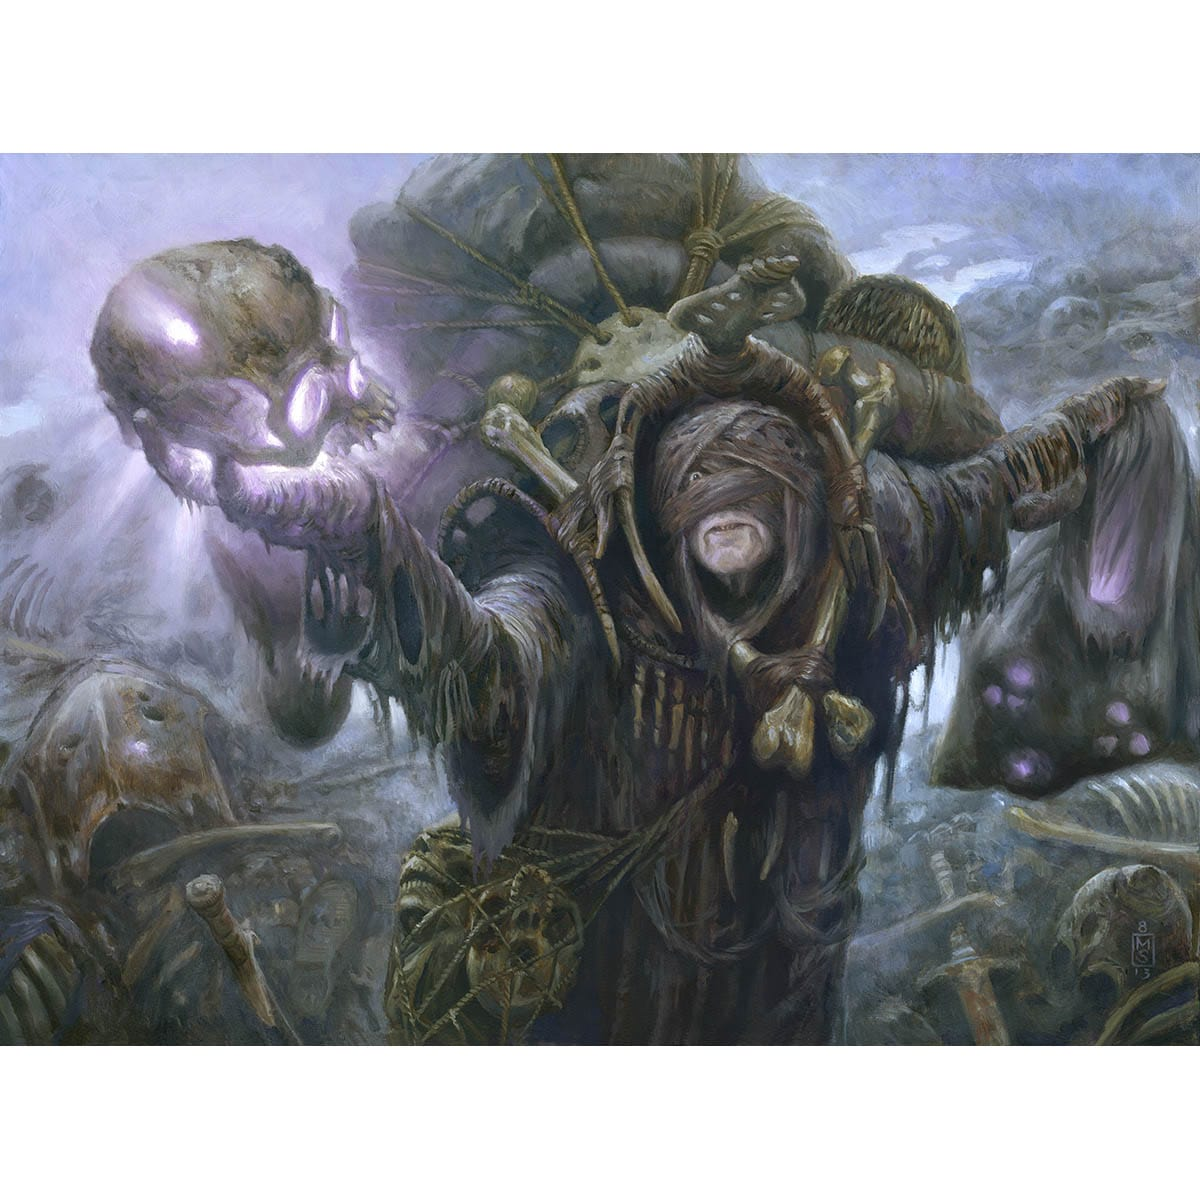 Waste Not Print - Print - Original Magic Art - Accessories for Magic the Gathering and other card games